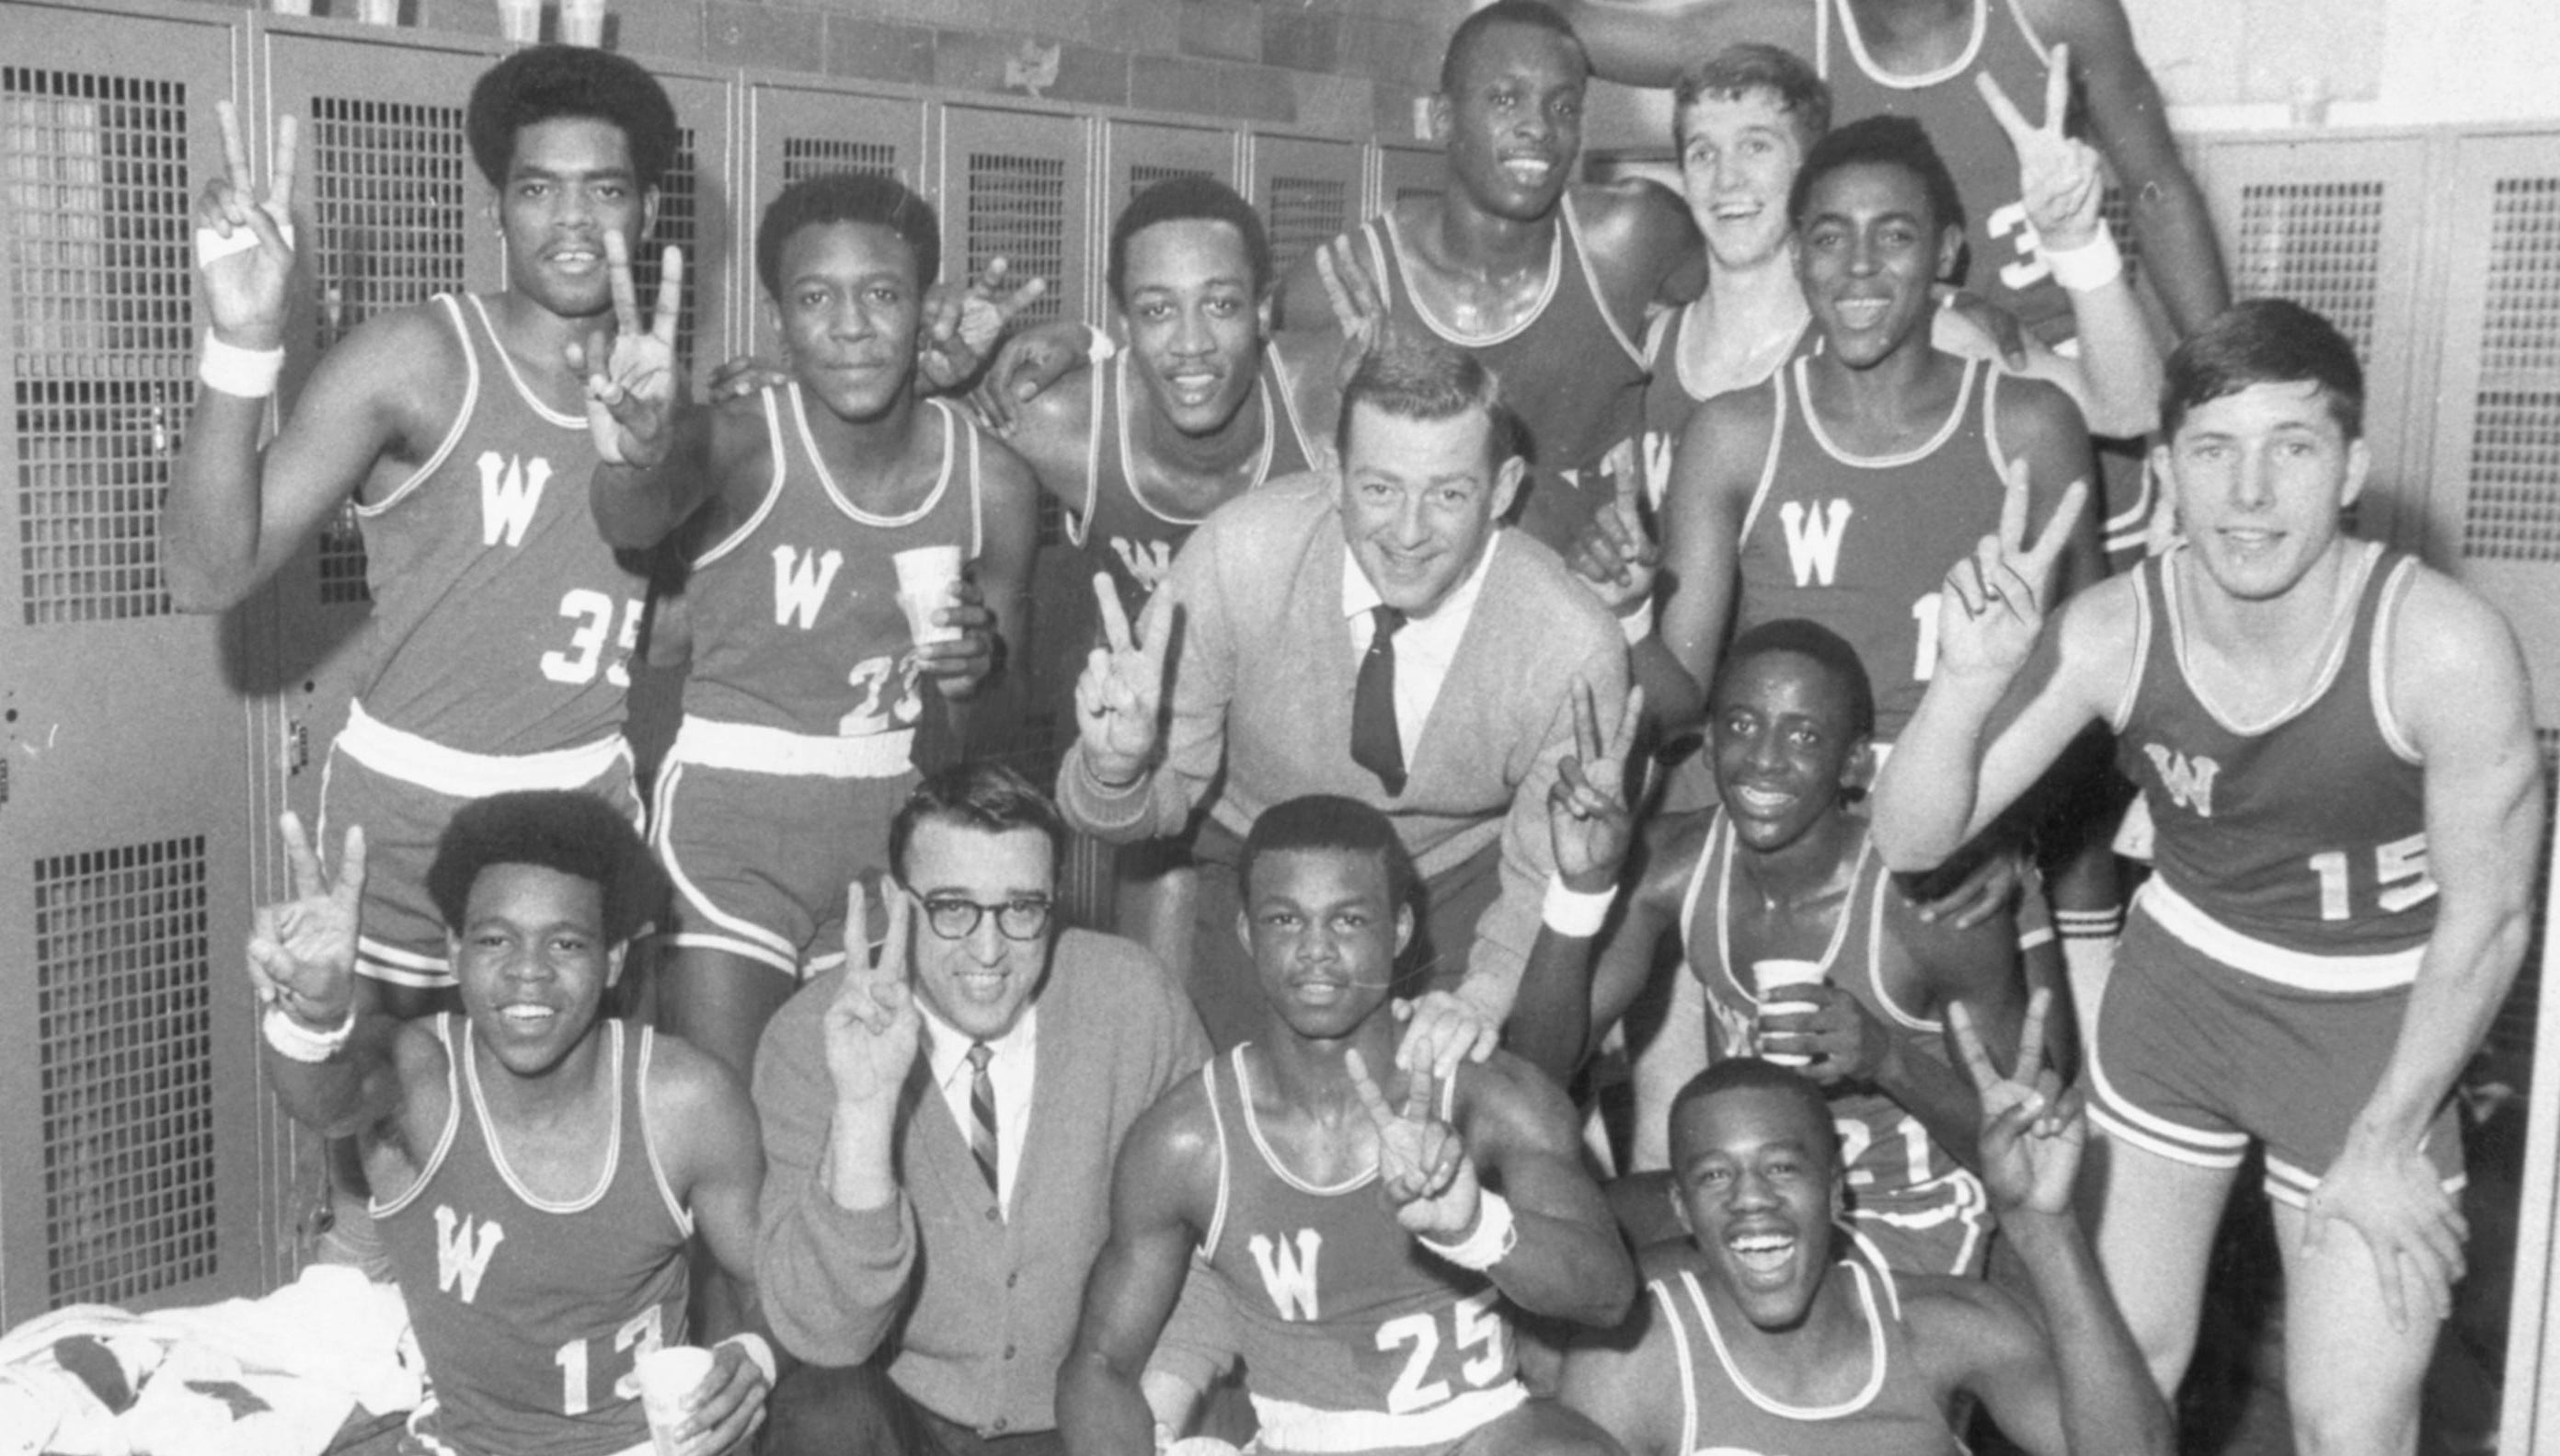 1969 Washington Continentals: Front row, left to right: Harvey Galbreath, Assistant Coach Basil Sfreddo, Louie Day and Steve Stanfield; middle row, Coach Bill Green, Wayne ack and Alan Glaze; back row, Ken Carter, Abner Nibbs, George McGinnis, Steve Downing, James Arnold, James Riley and Kenneth Parks.